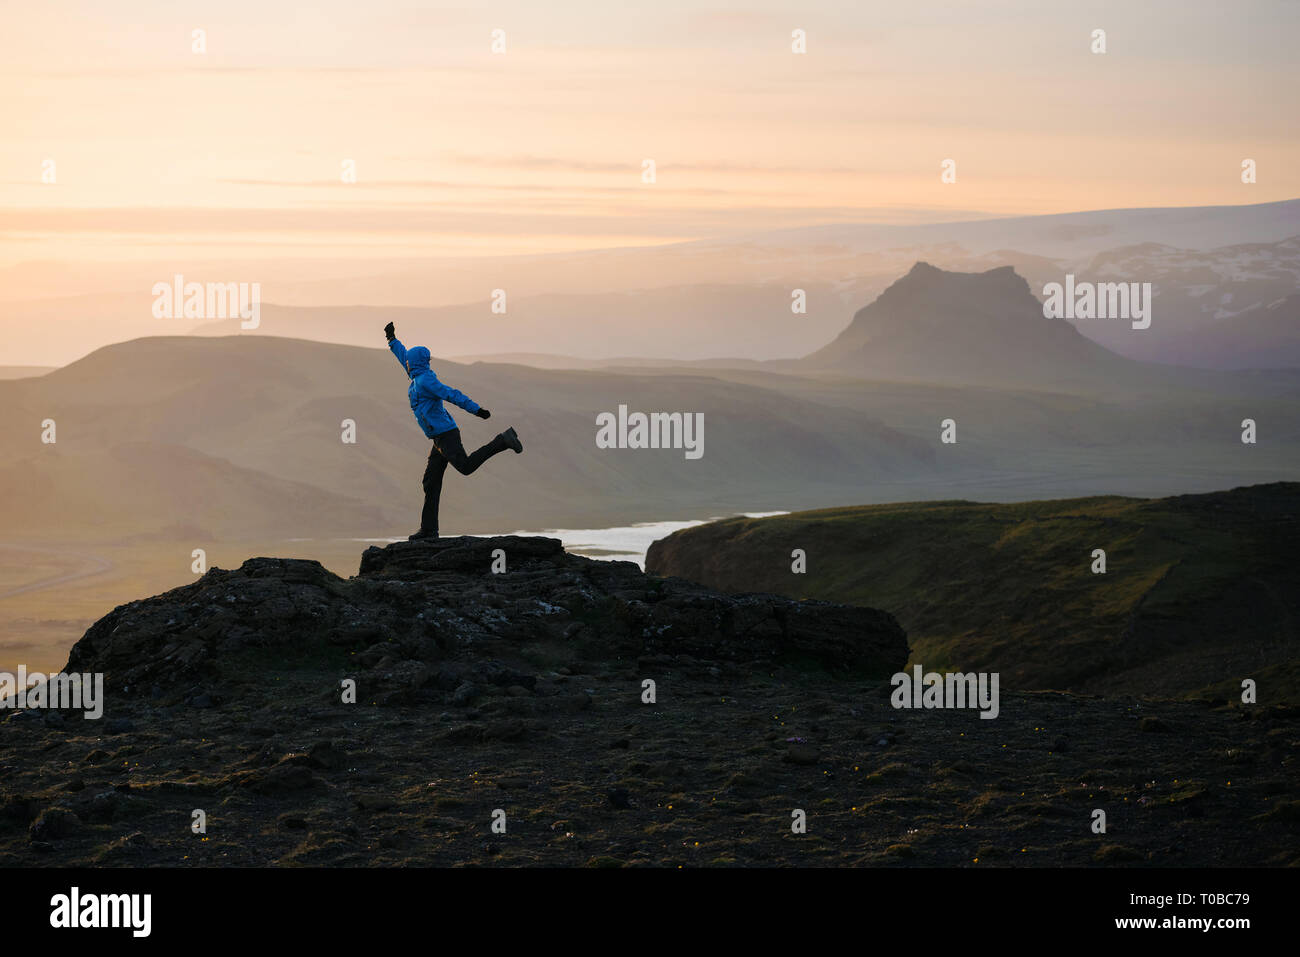 Adventure in the mountains of Iceland. Tourist is standing on a rock against the background of the setting sun. Location near Dyrholaey Cape in southe - Stock Image